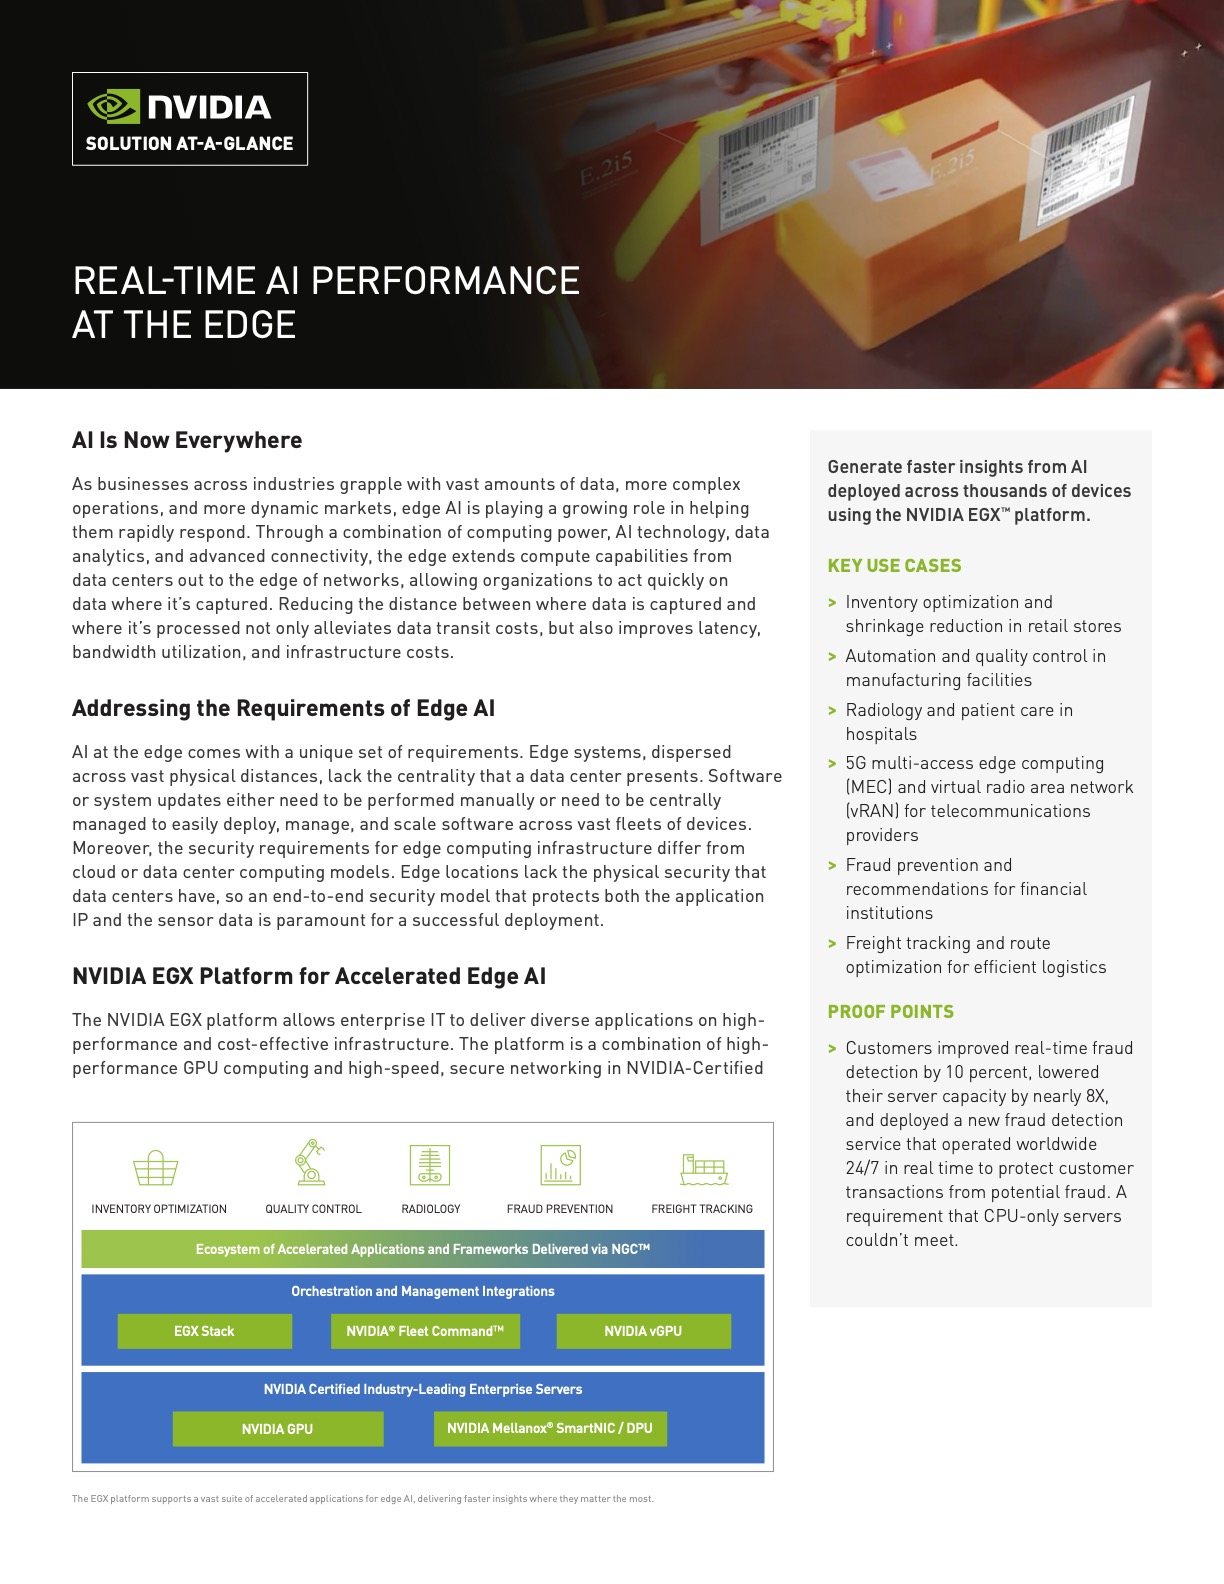 Real-Time AI Performance at the Edge